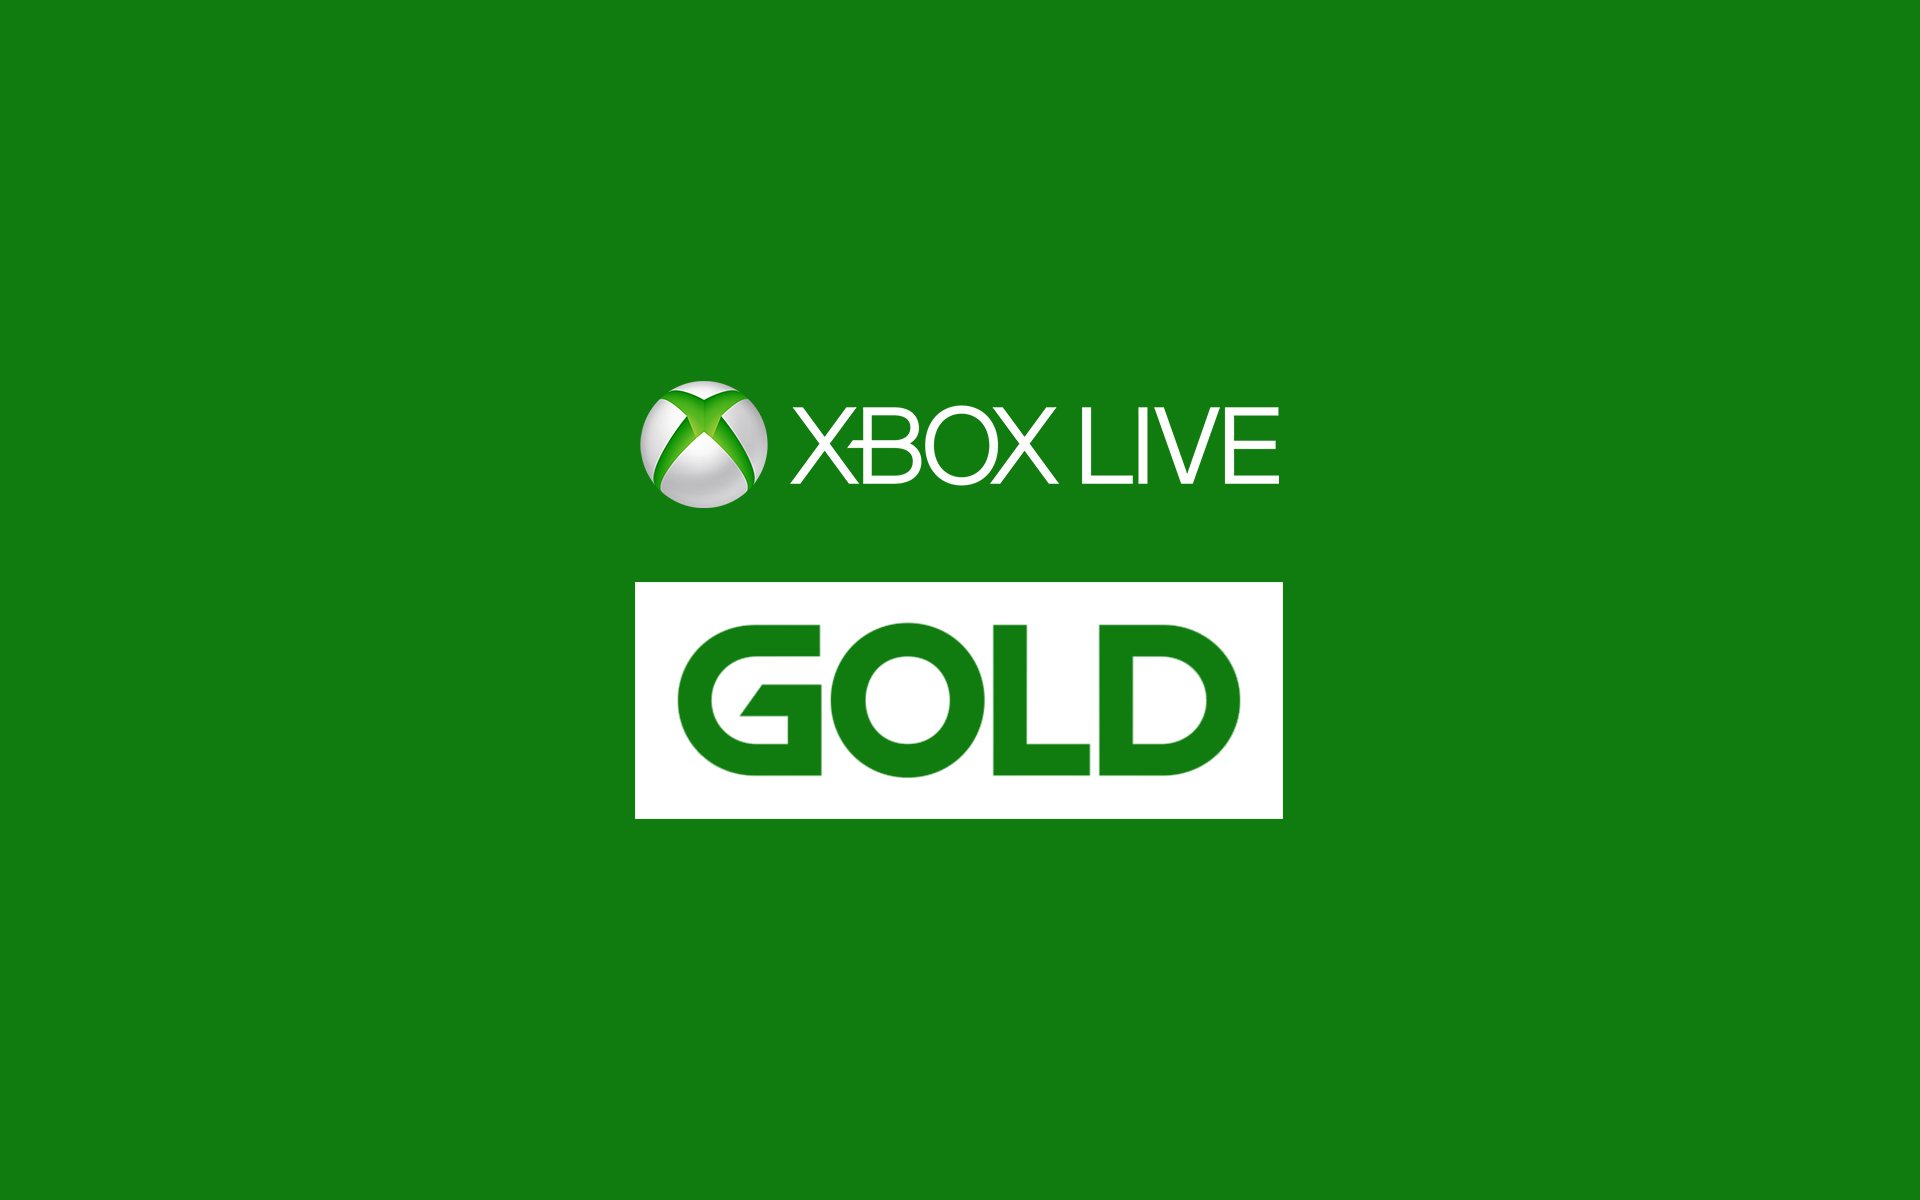 6 Meses - Xbox Live Gold cover